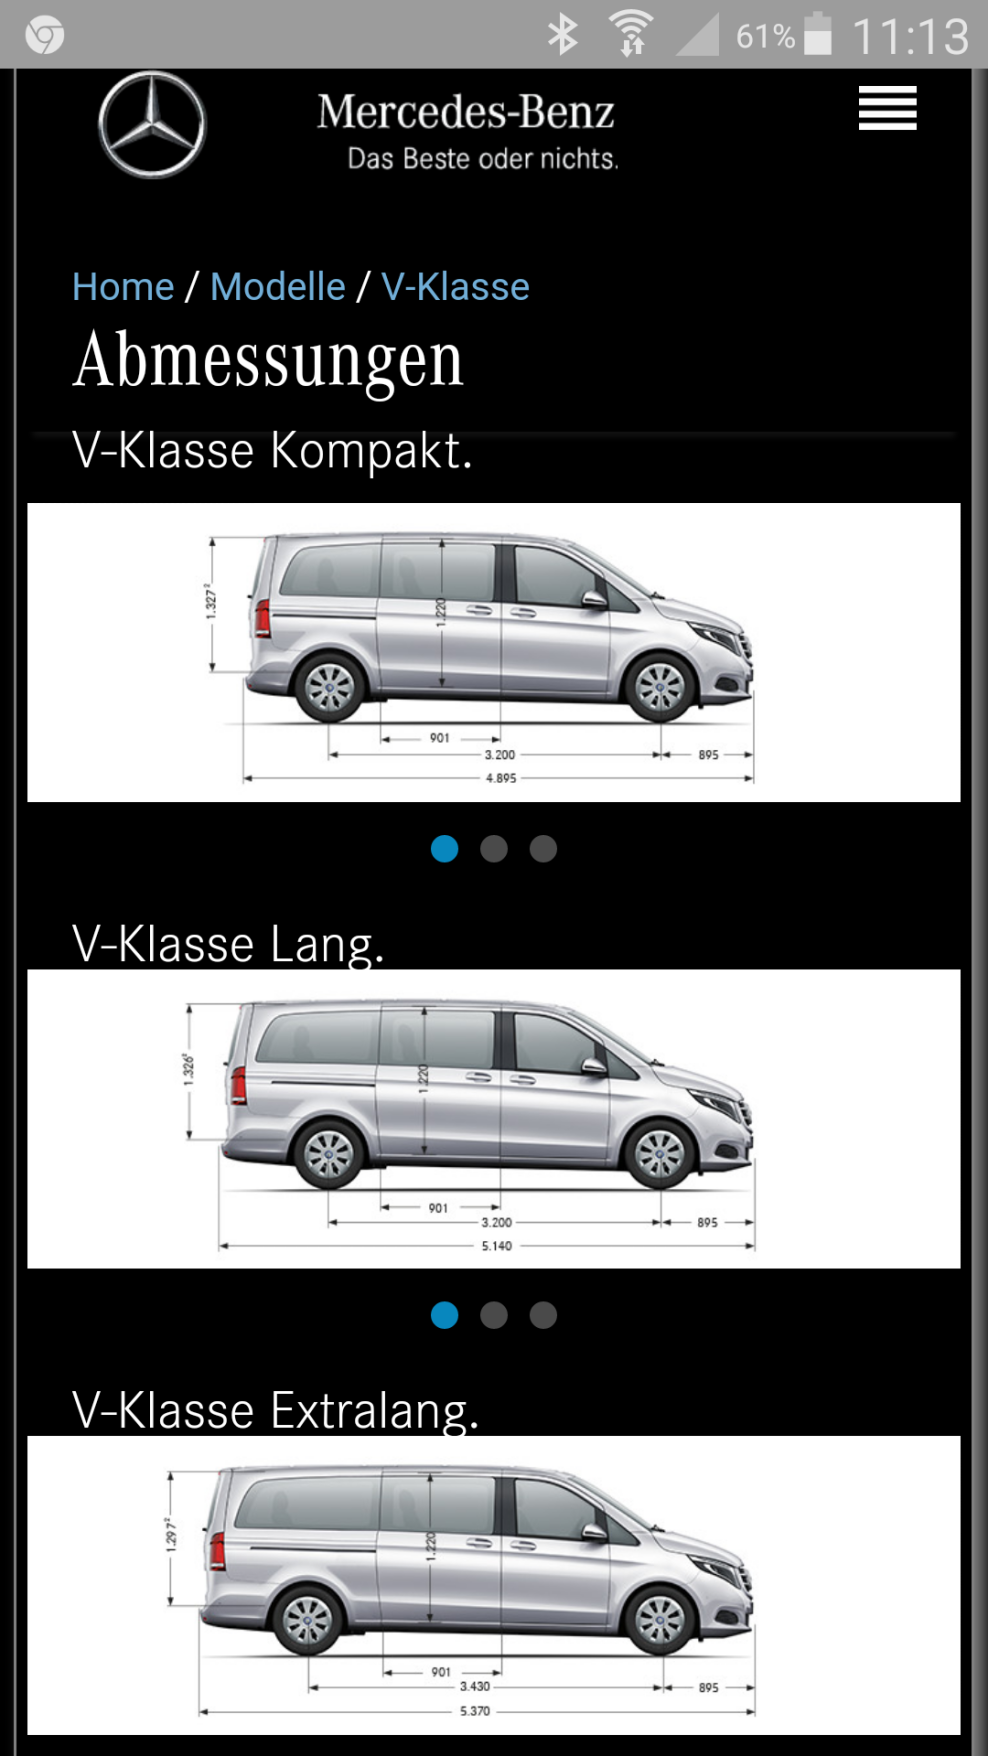 screenshot 2017 01 25 11 13 37 kauf berlegungen zur v klasse mercedes v klasse vito 447. Black Bedroom Furniture Sets. Home Design Ideas